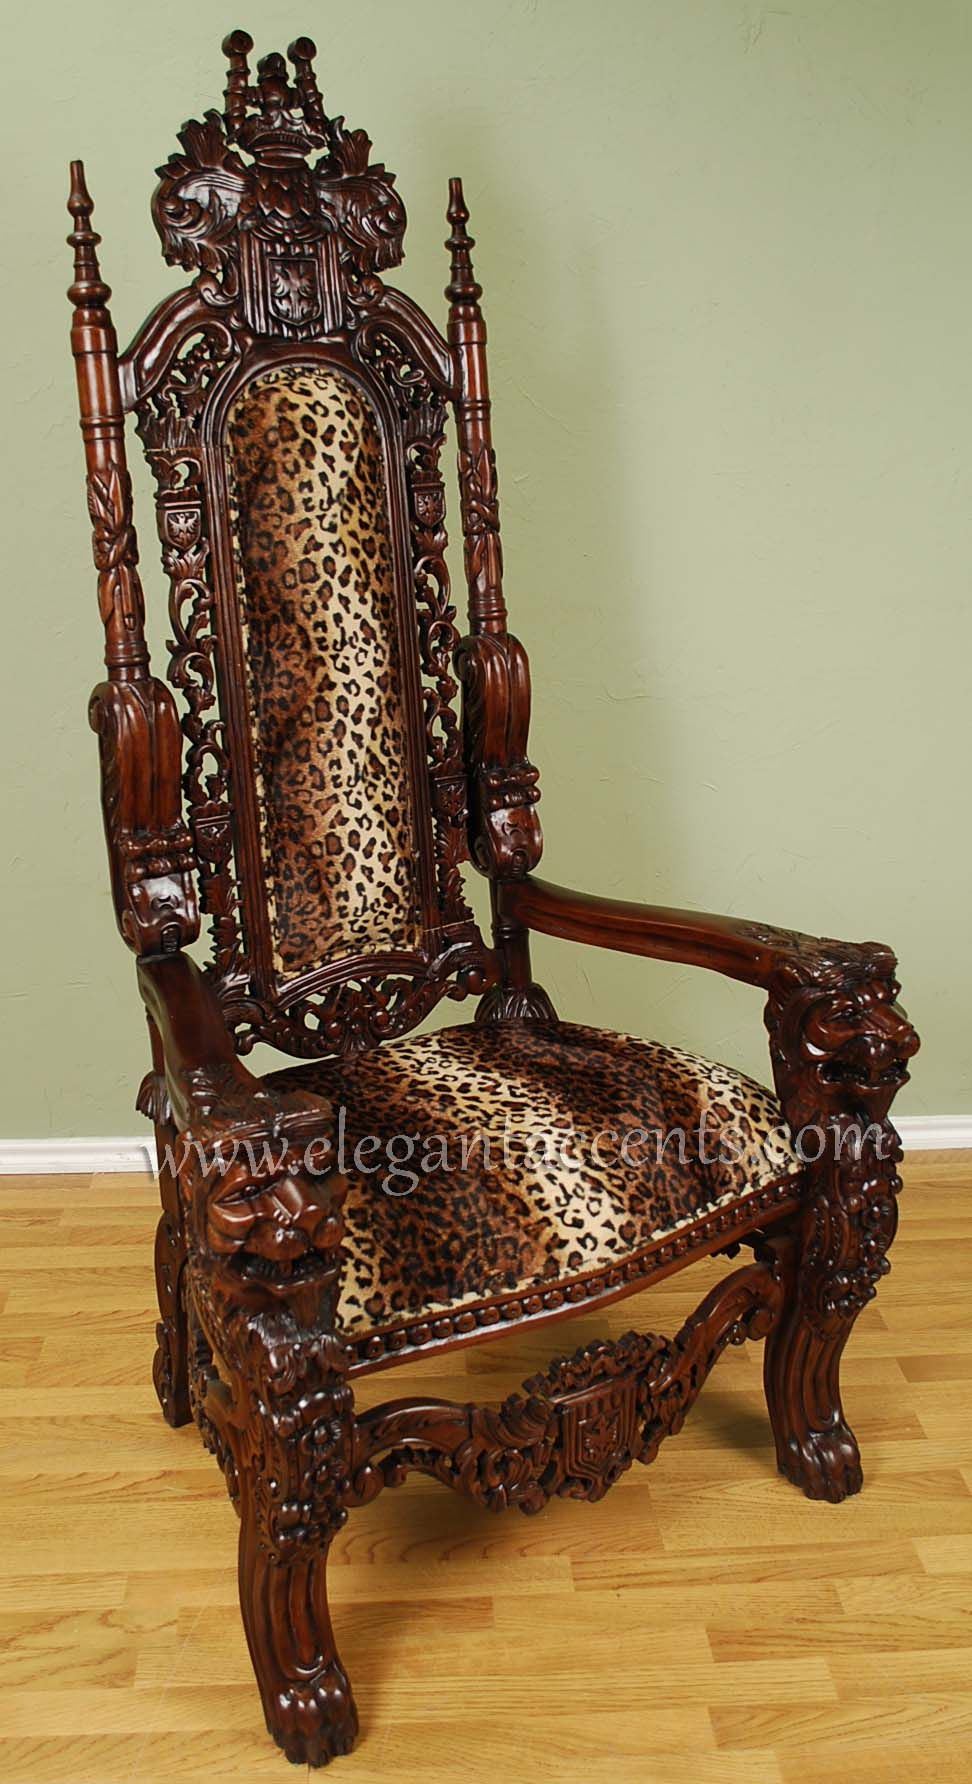 Lion Throne Chair   $995 Brown Lacquer With Leopard Print